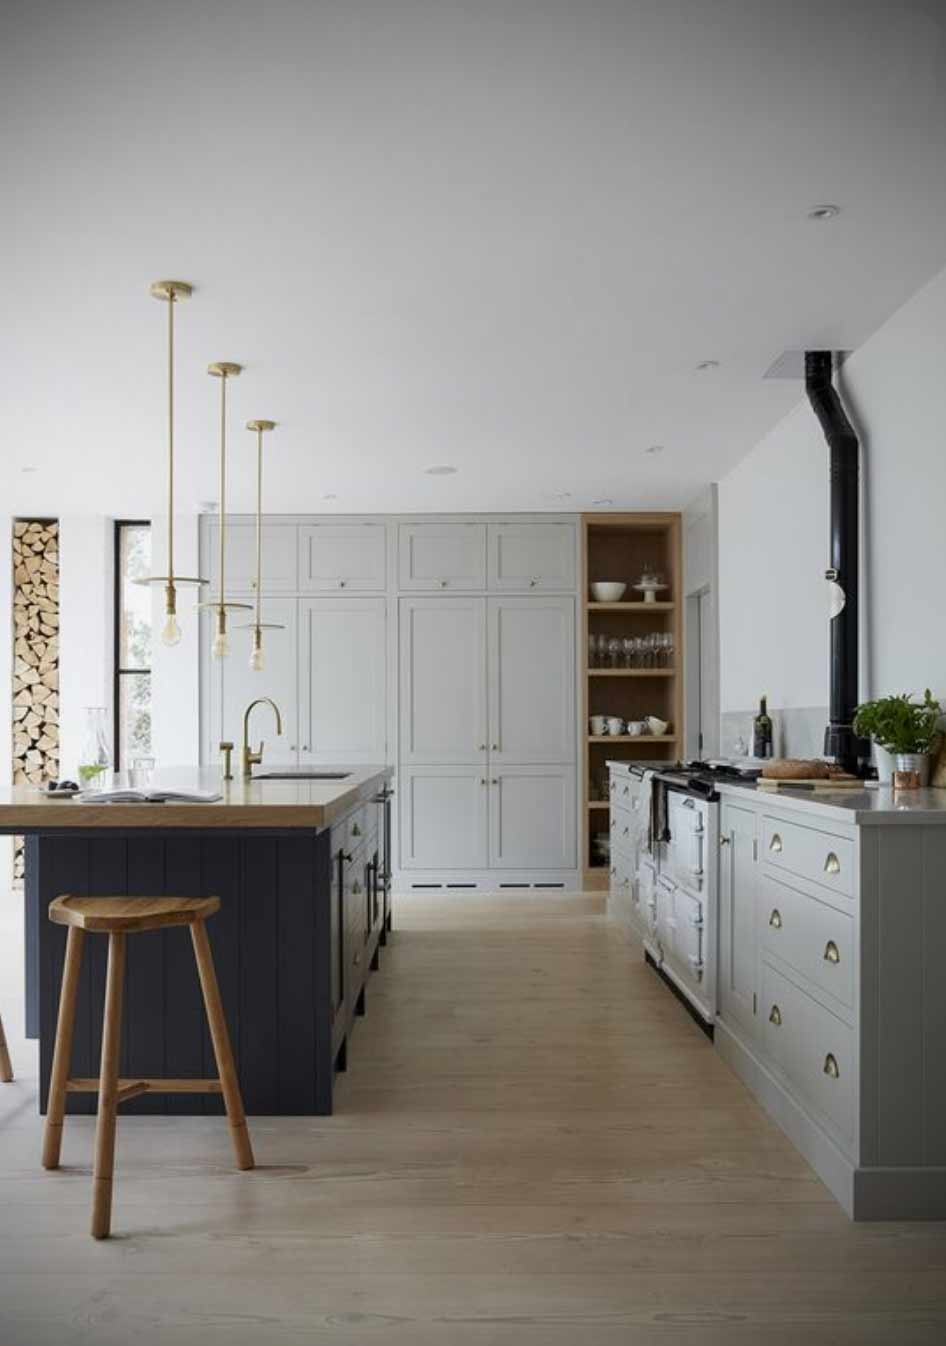 Image of a scandi style minimalist kitchen used in a blog by forthefloorandmore.com